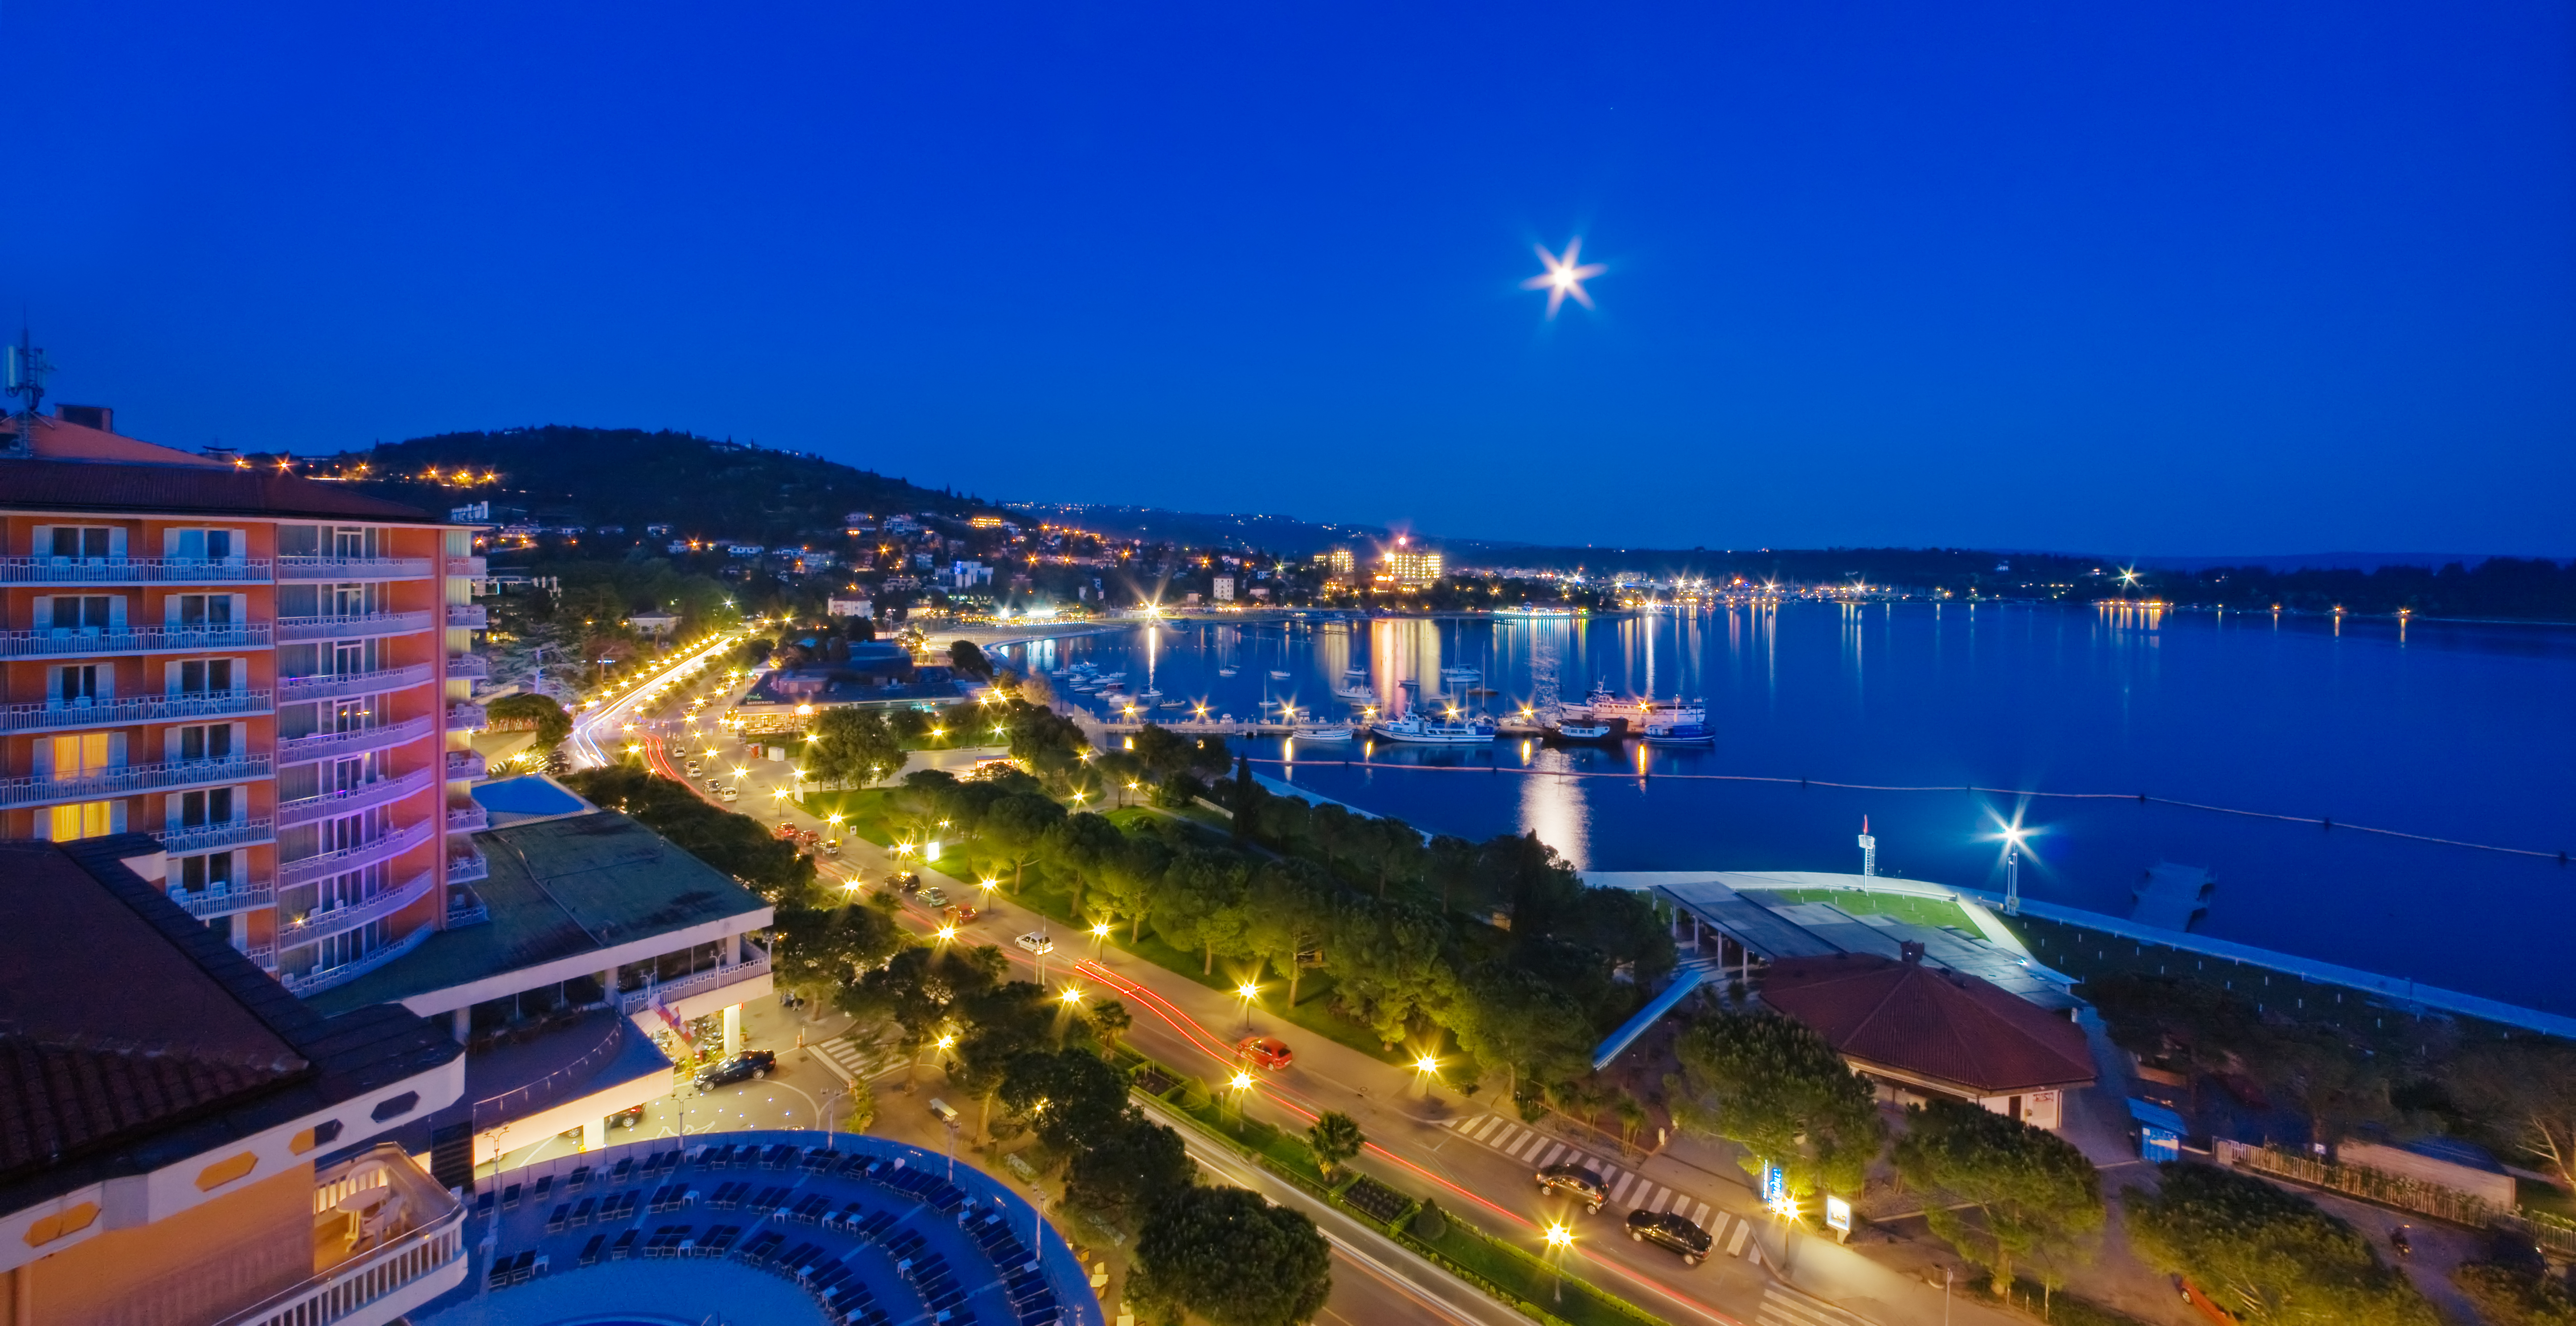 Portoroz promenade - view from Slovenija and Riviera Hotels